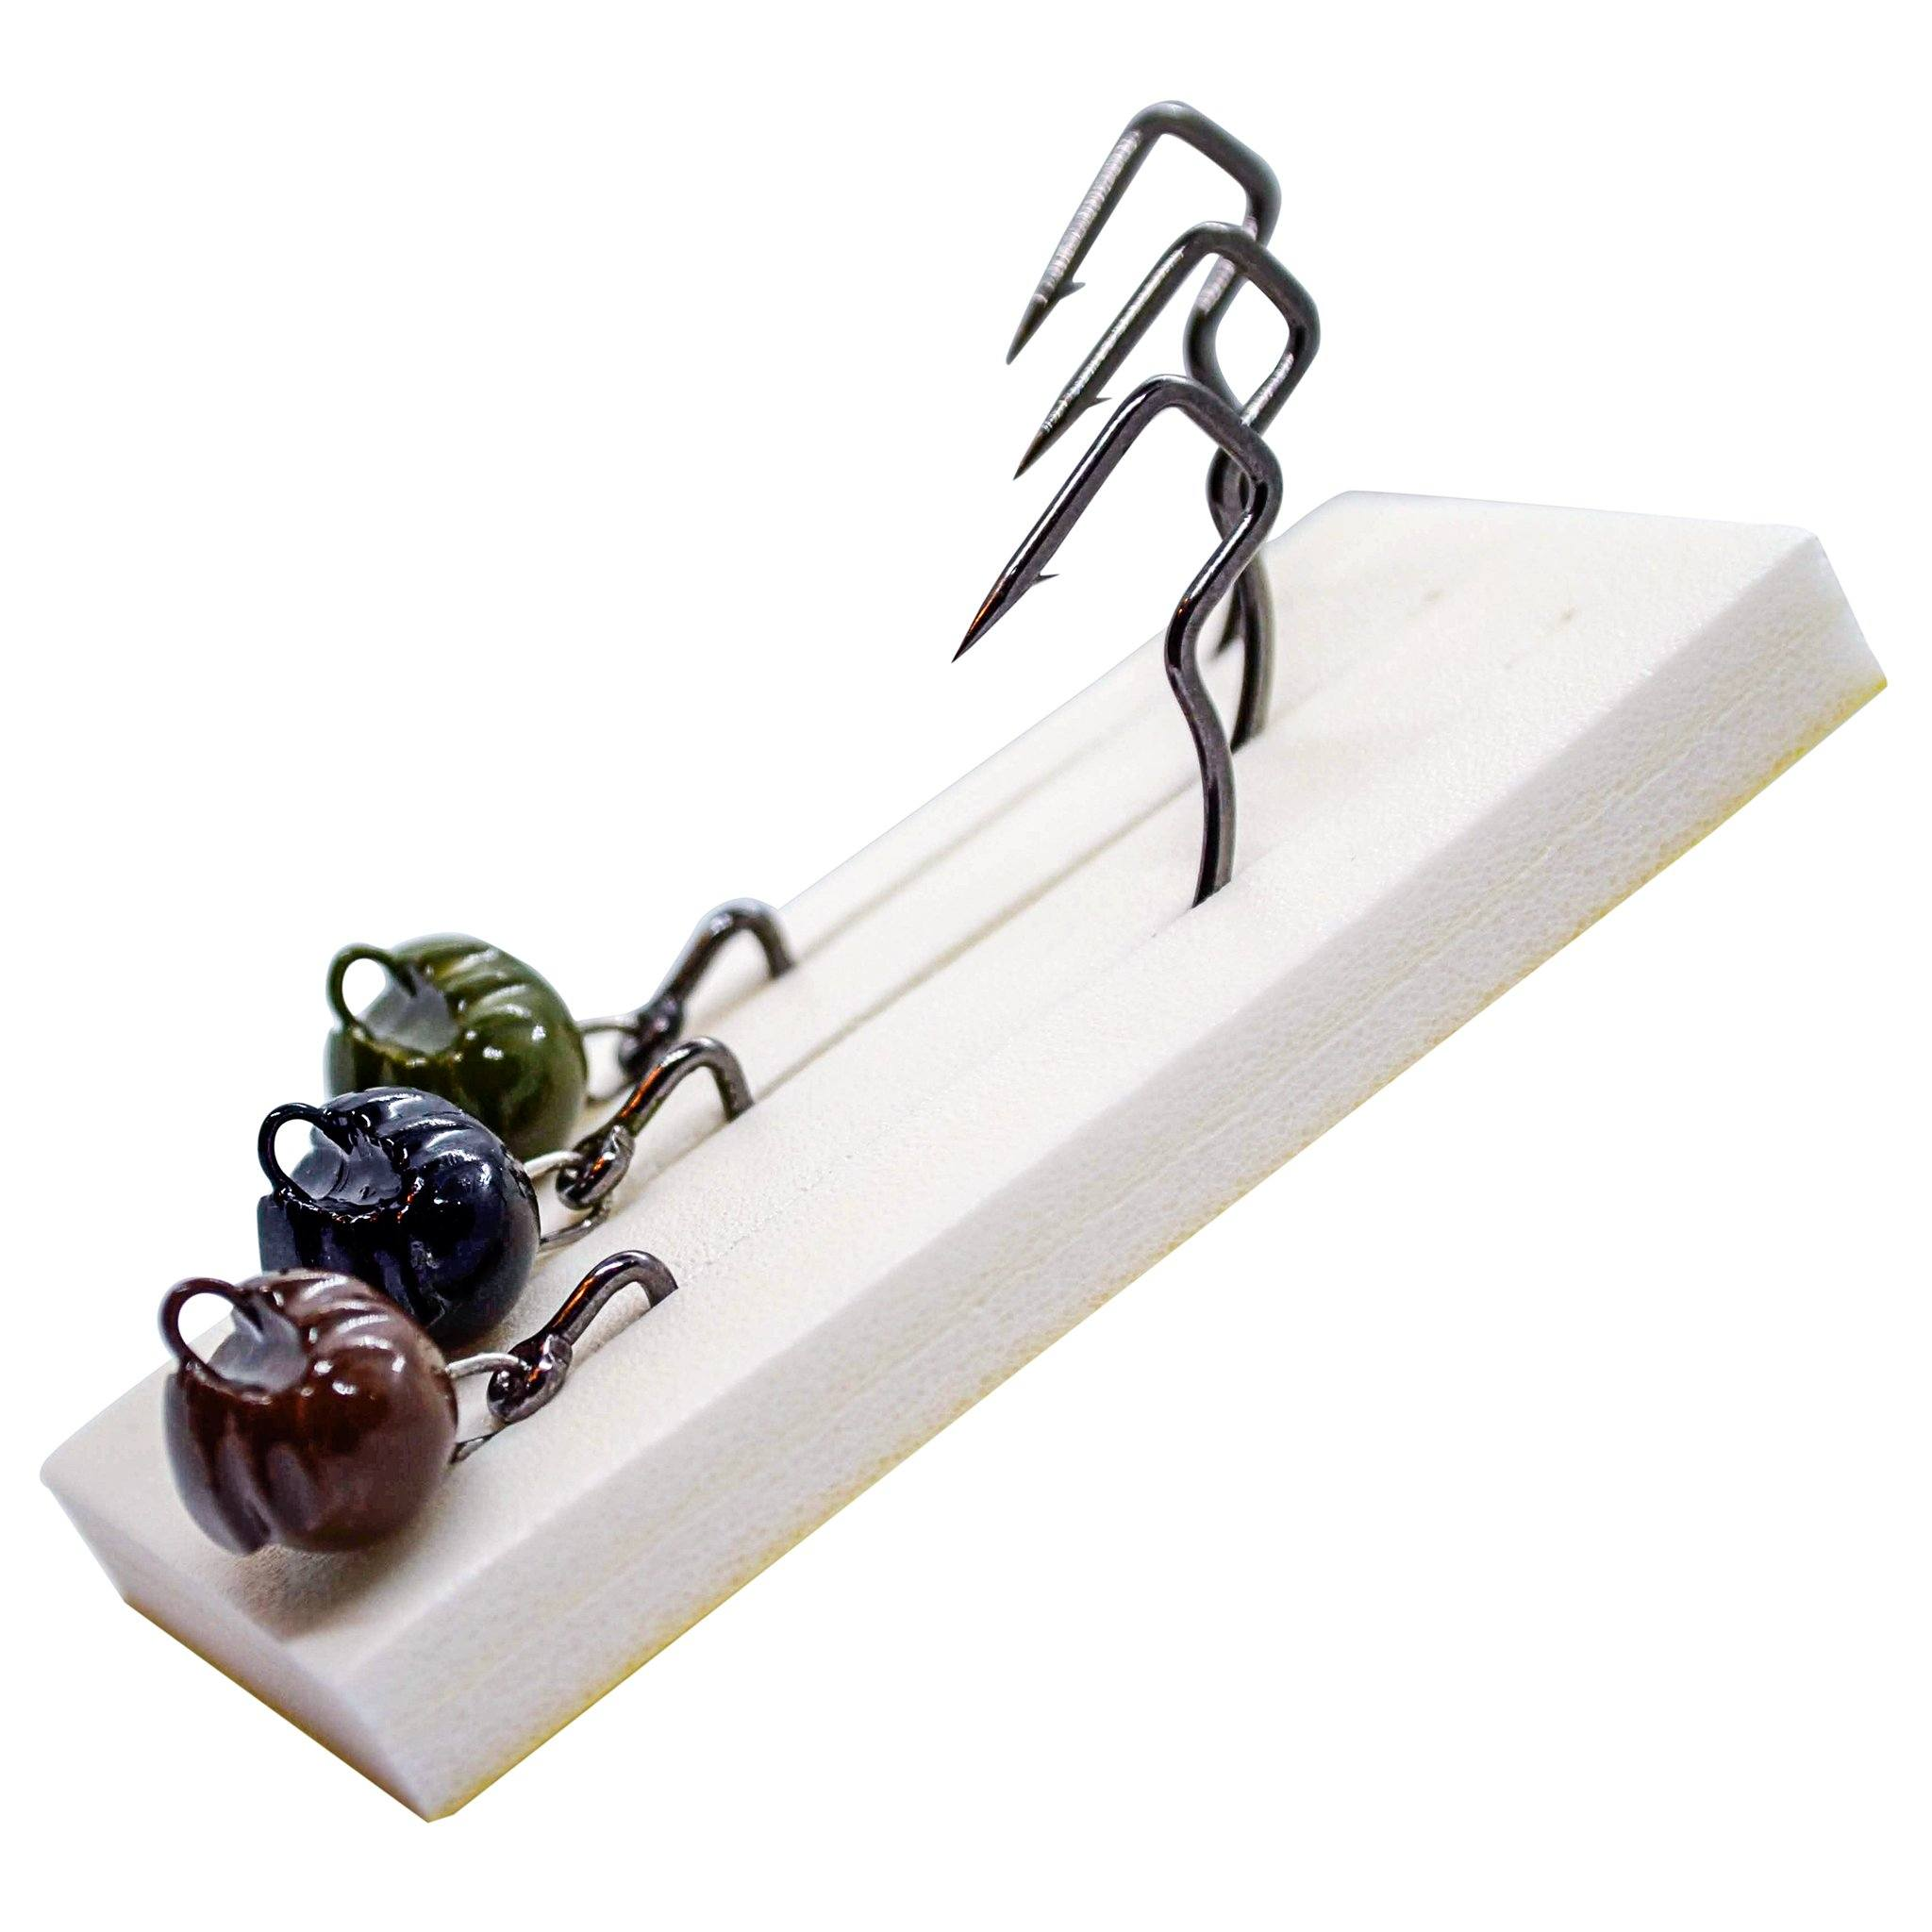 Trapper Tackle Crawtail Swing Jig Related Trapper Tackle LLC